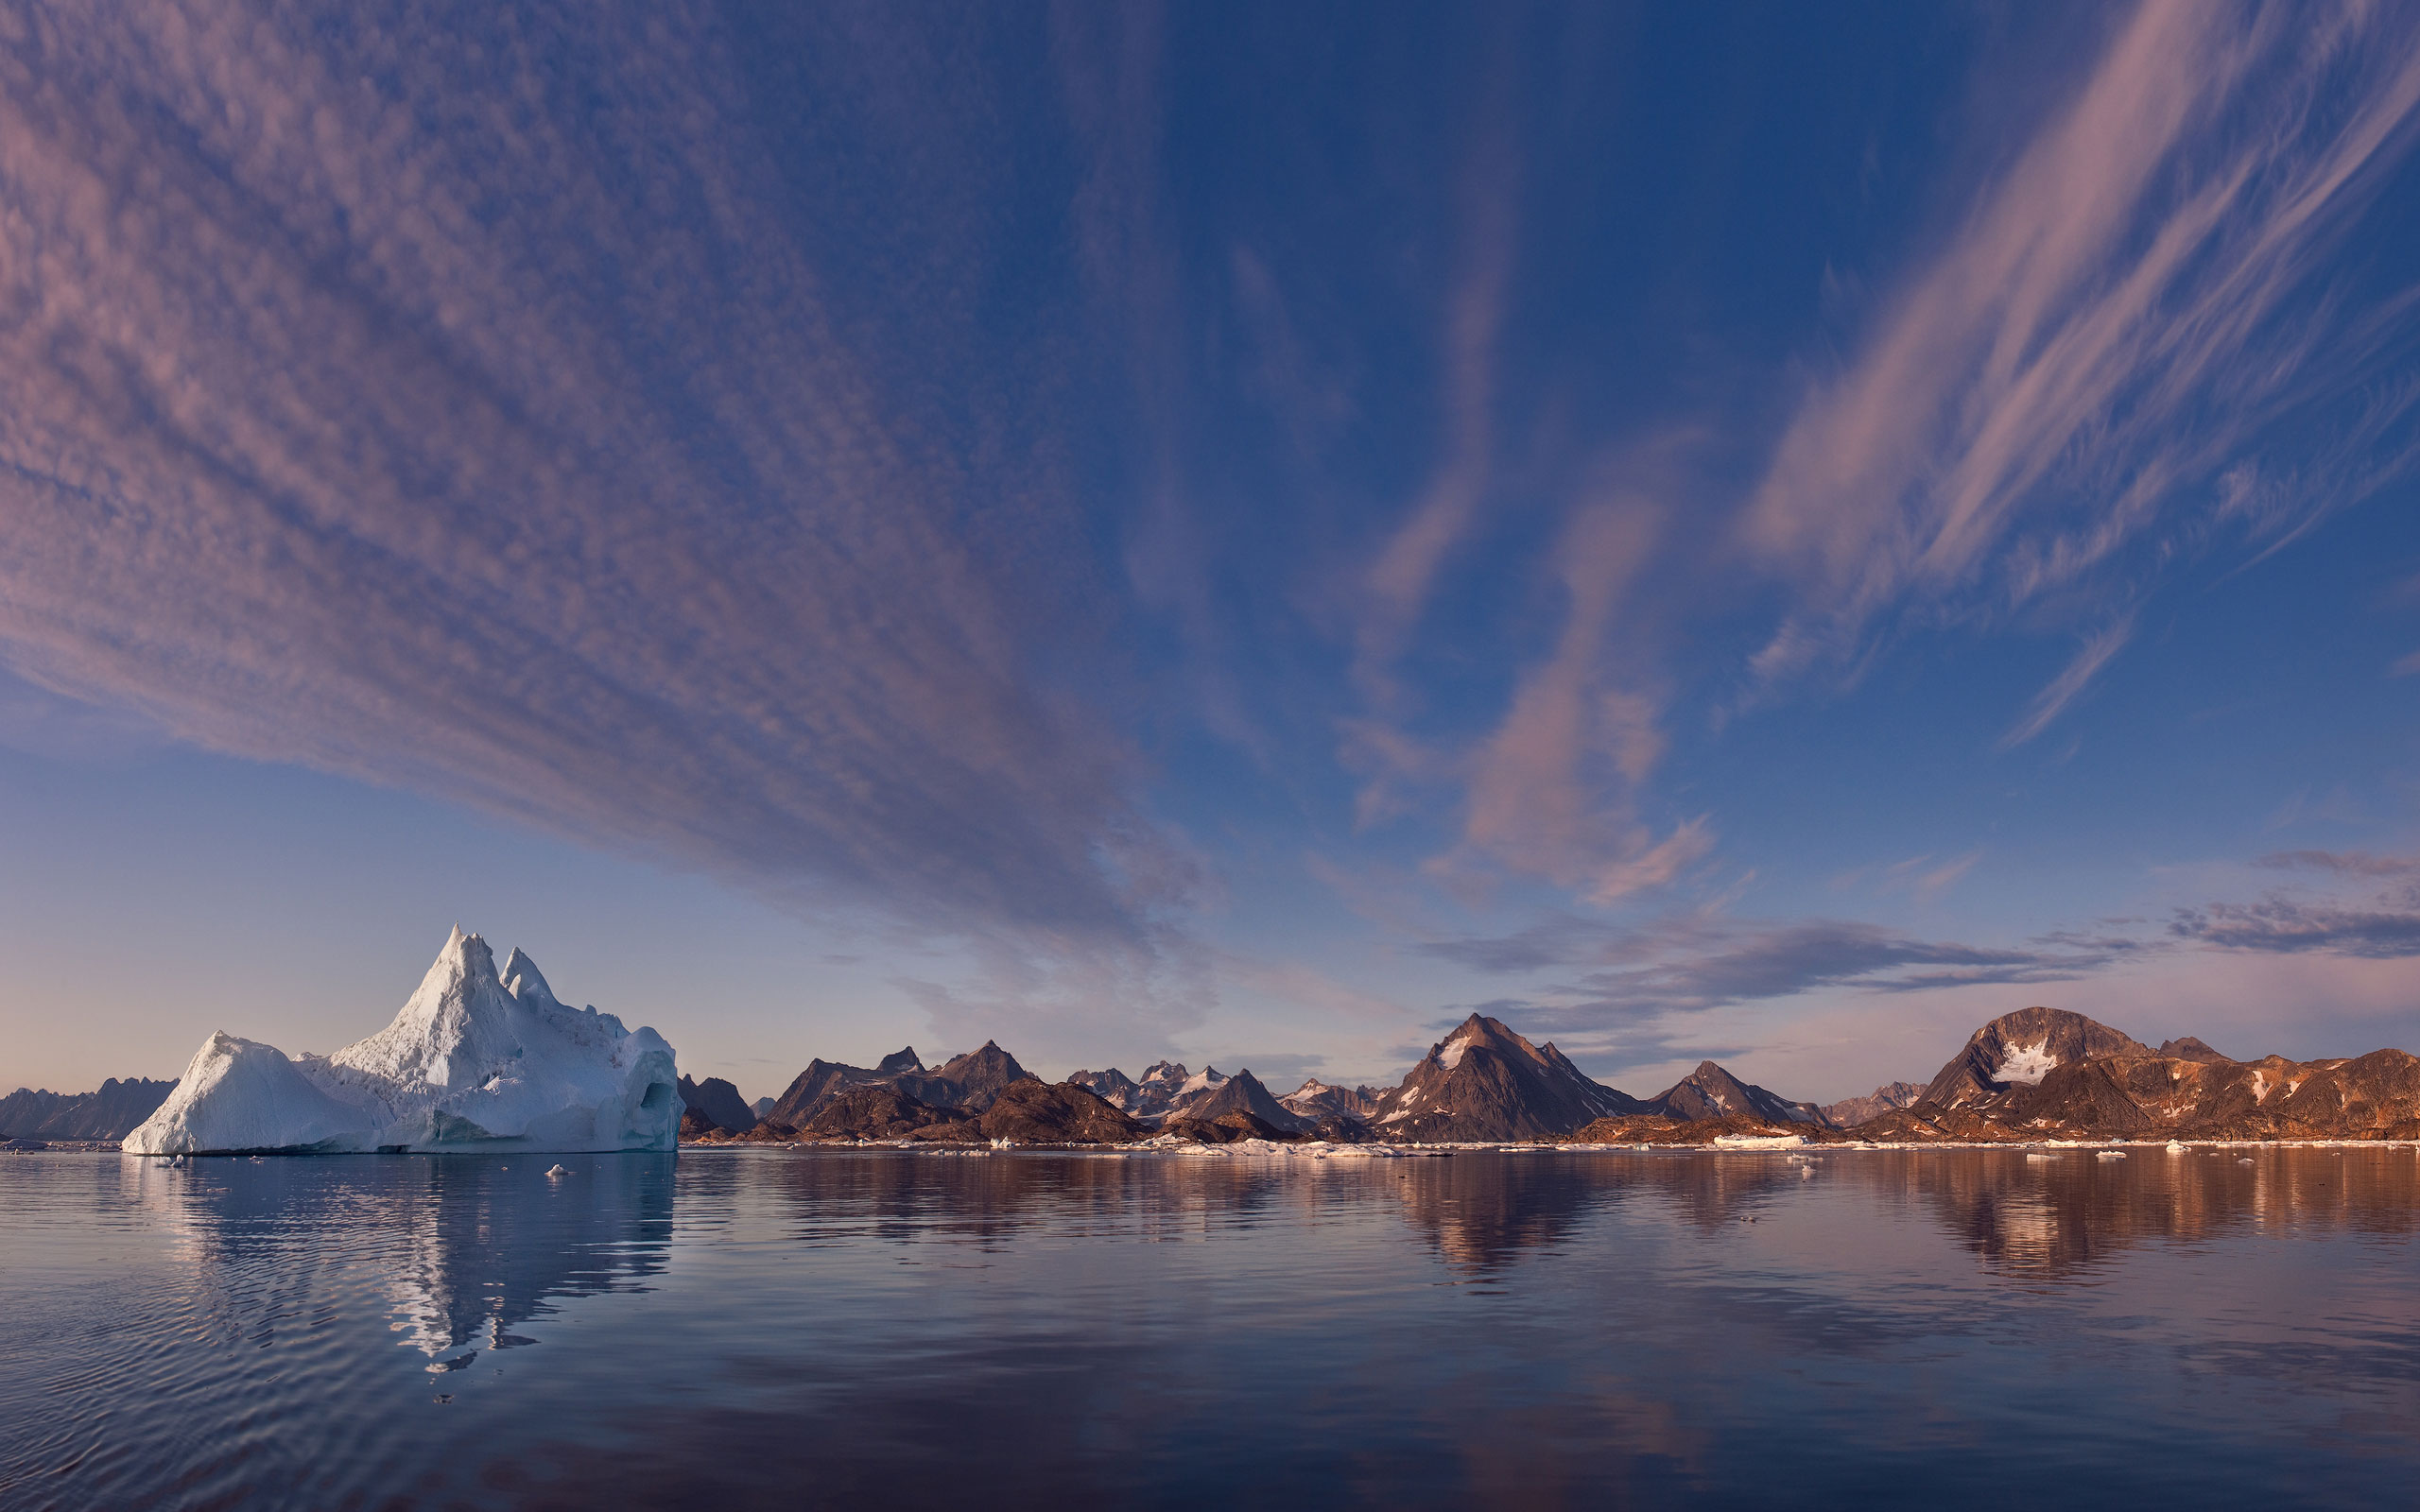 Iceberg by the shores of Kulusuk island. Southeastern Greenland. - Greenland-Iceberg-Factory-1 - Mike Reyfman Photography